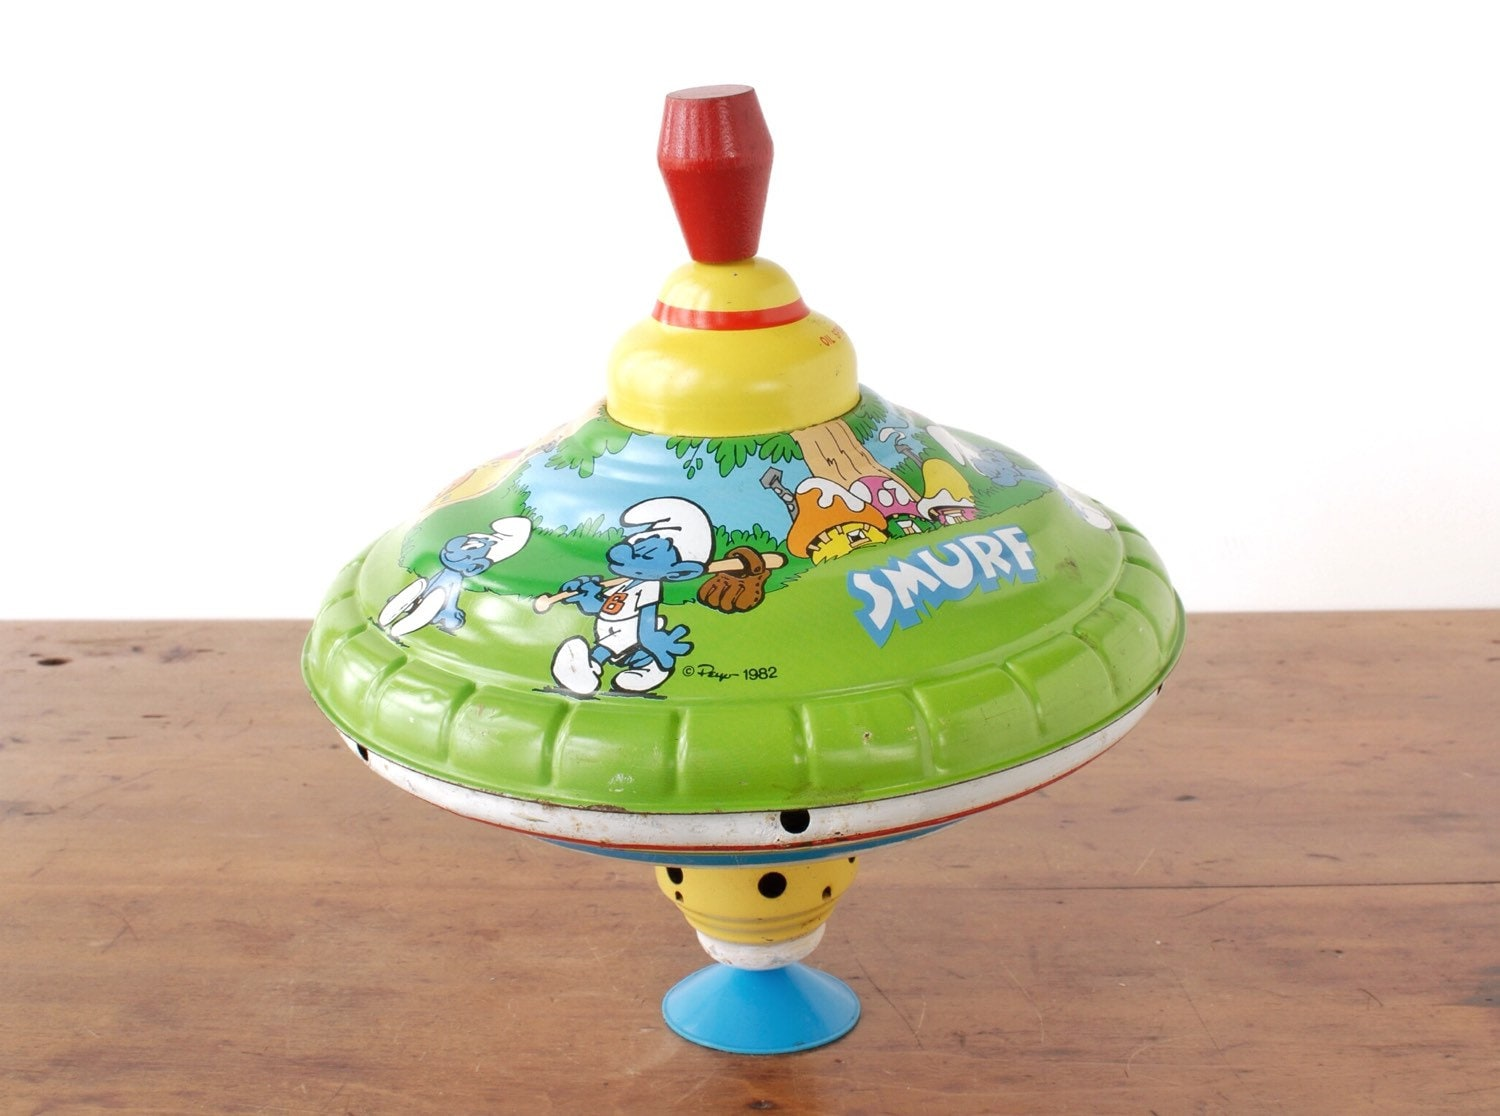 Vintage Smurfs Spinning Top By The Ohio Art Company Tin Litho